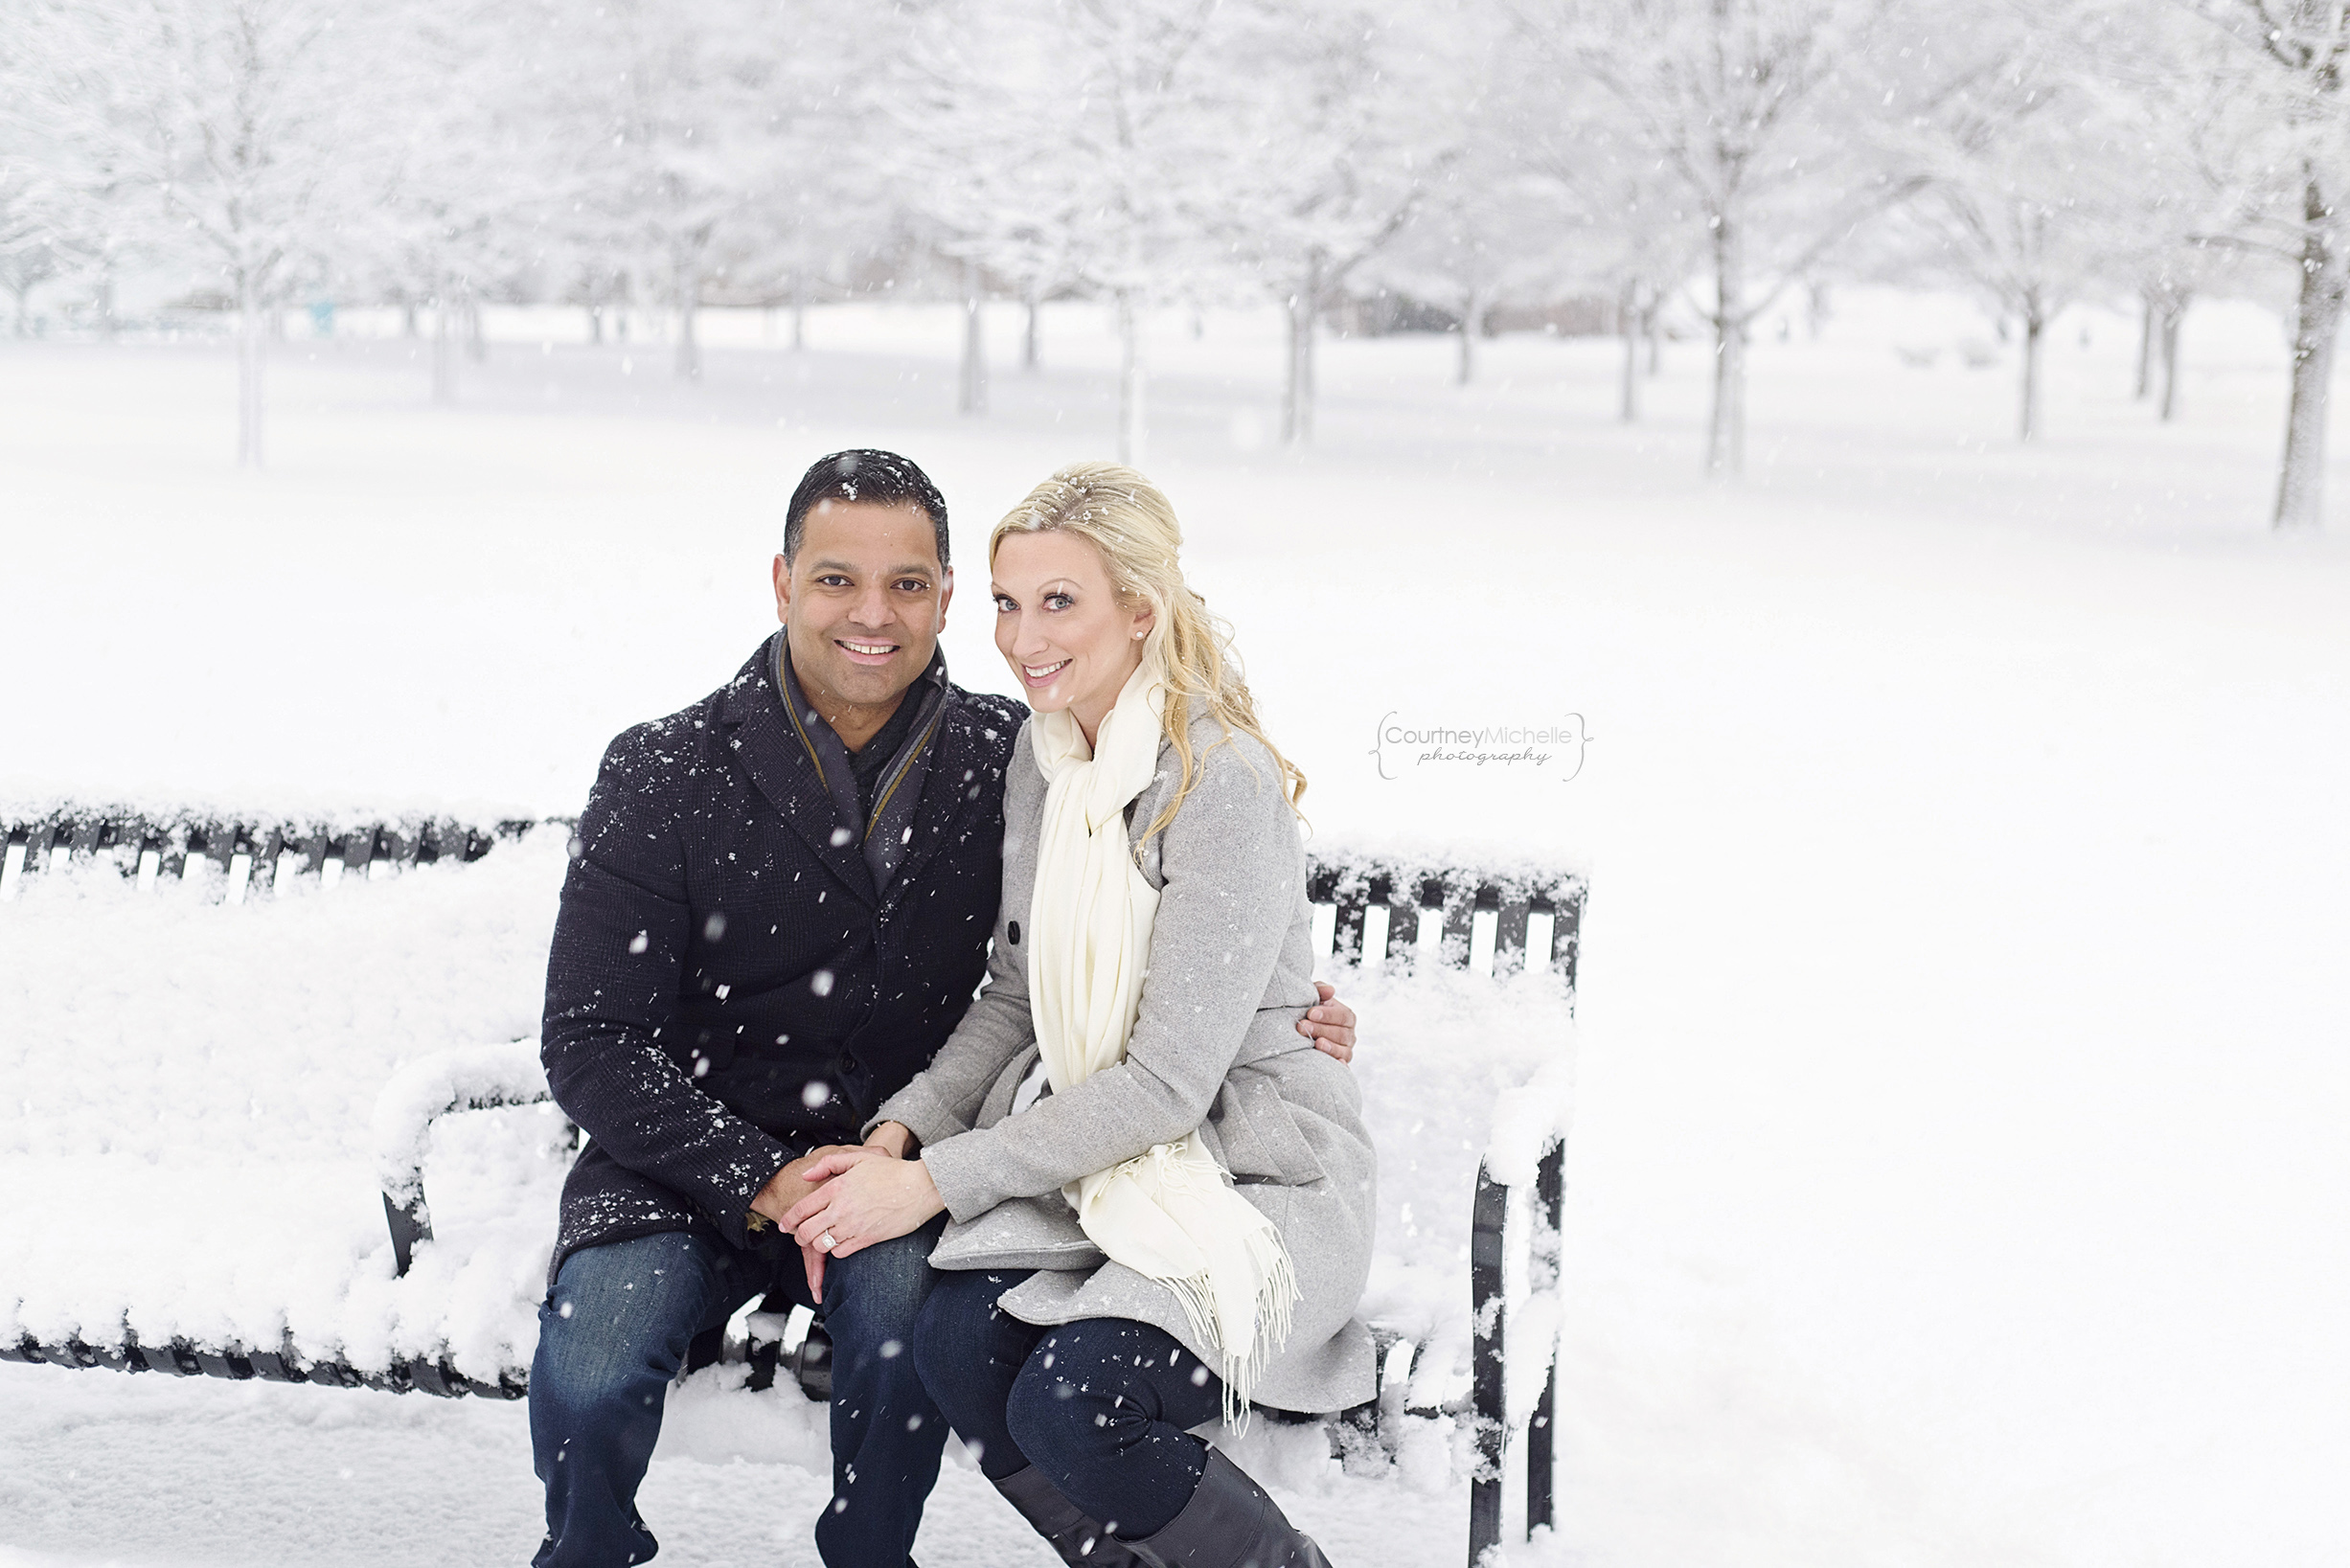 snowy-chicago-engagement-photography-museum-campus-cute-couple-in-snow-courtney-laper©COPYRIGHTCMP-3466.jpg